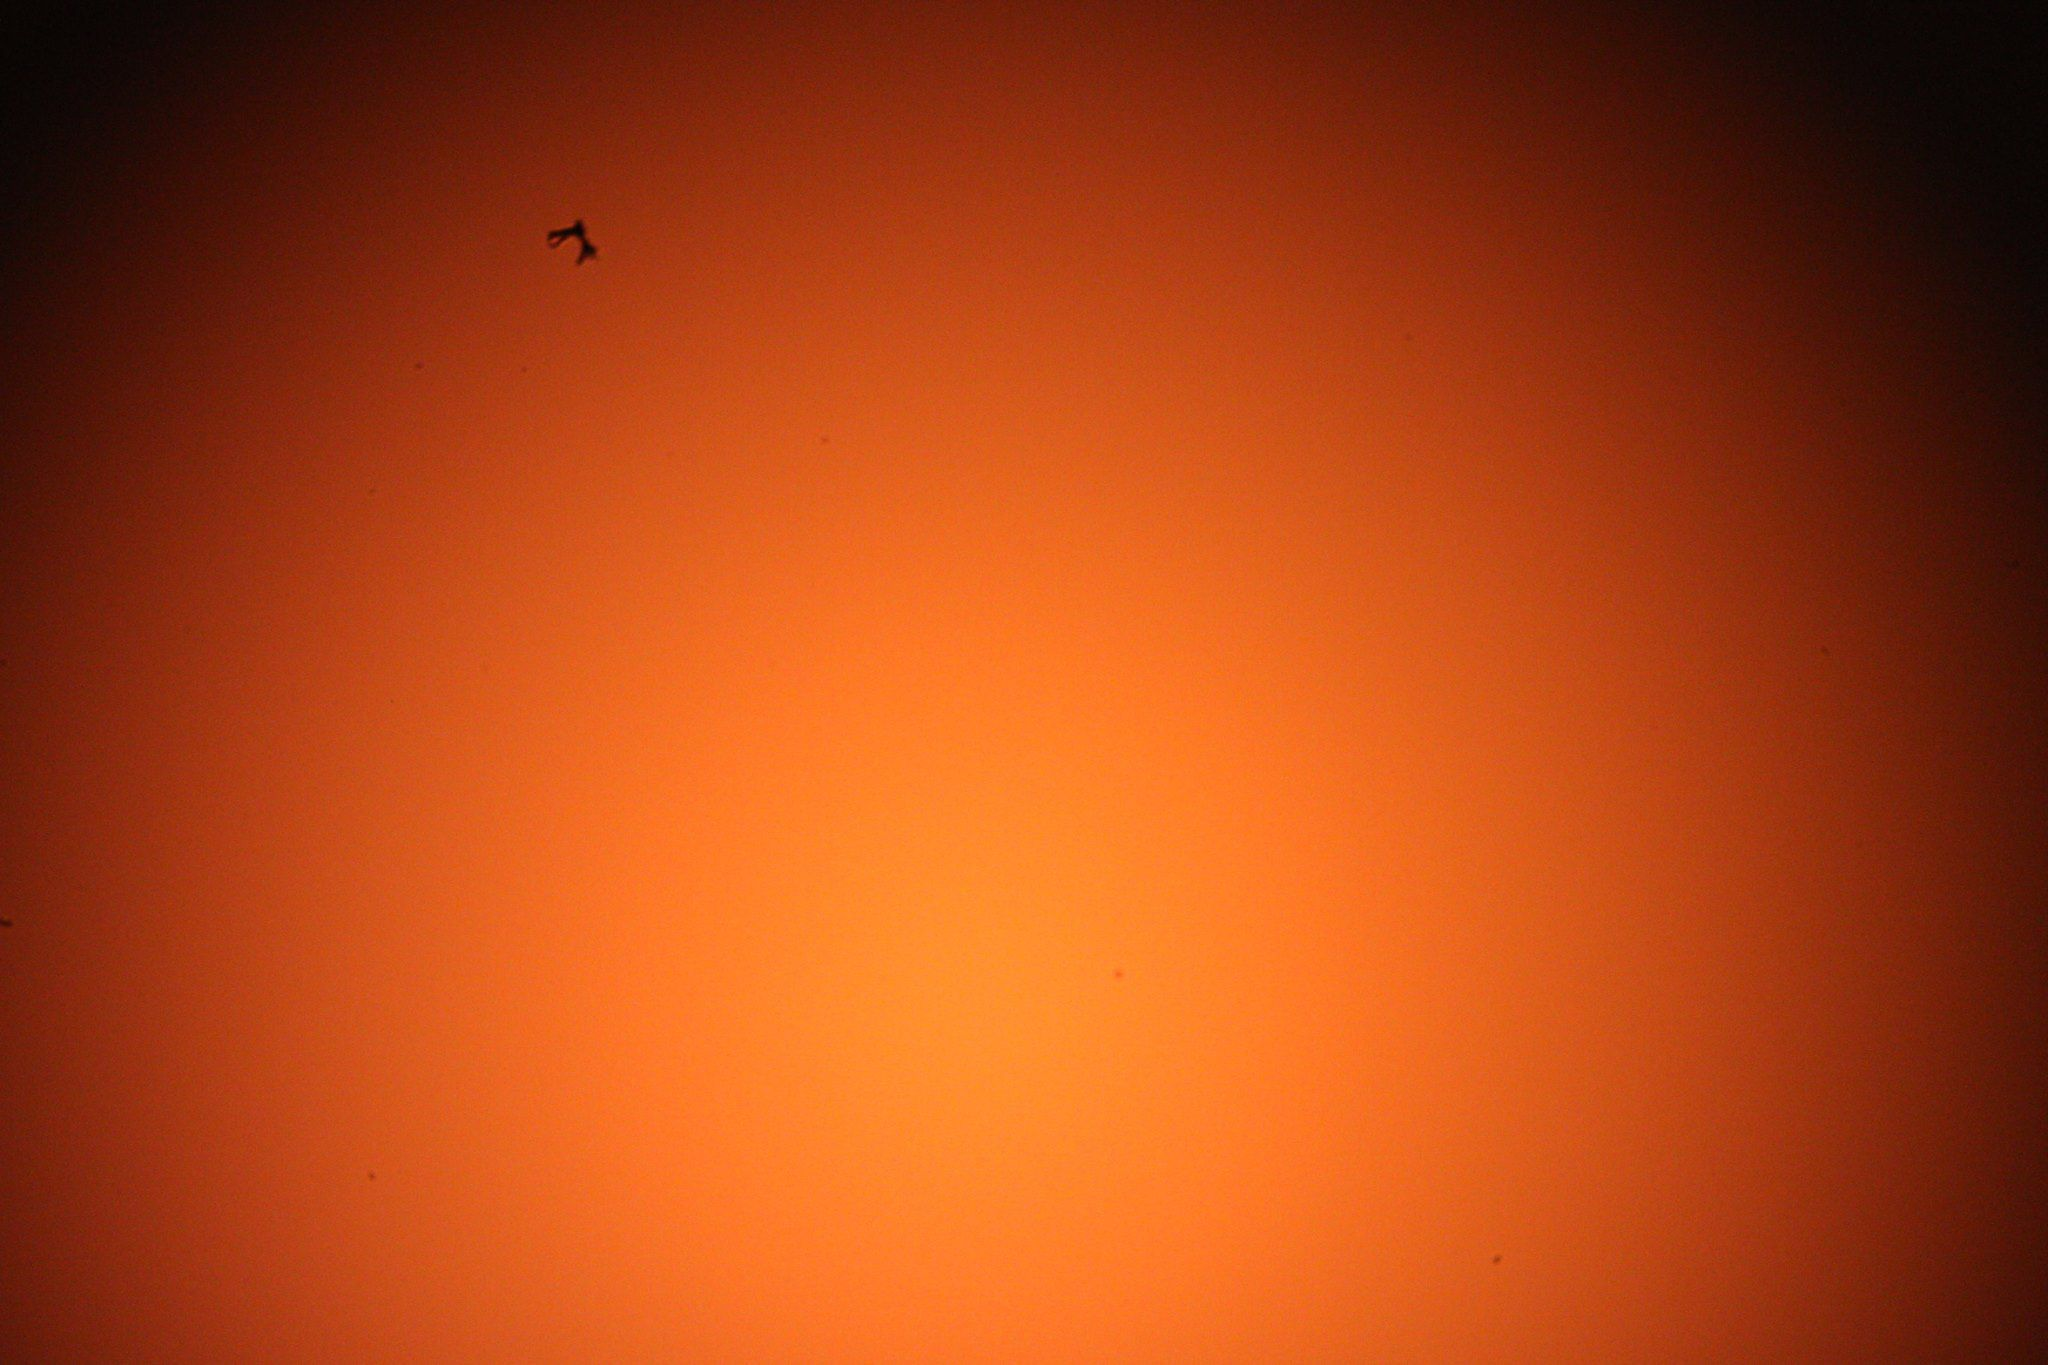 ISS passing in front of the sun at US Store